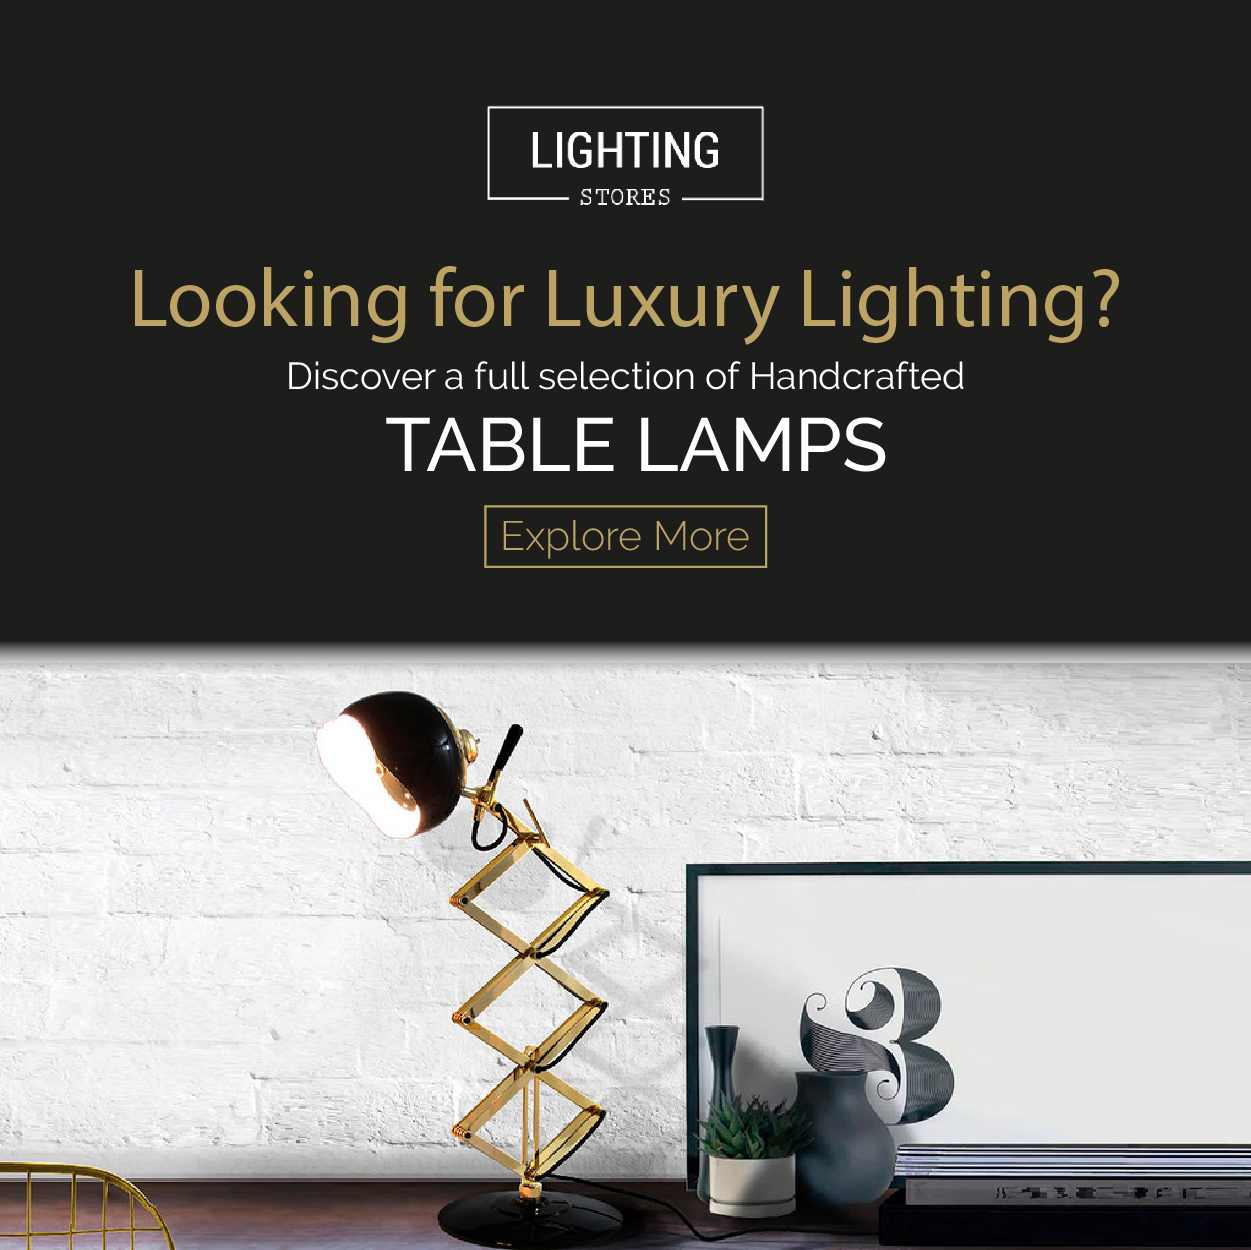 Lighting Stores Table Lamps bathroom furniture Newsletter BANNER 20SD 03